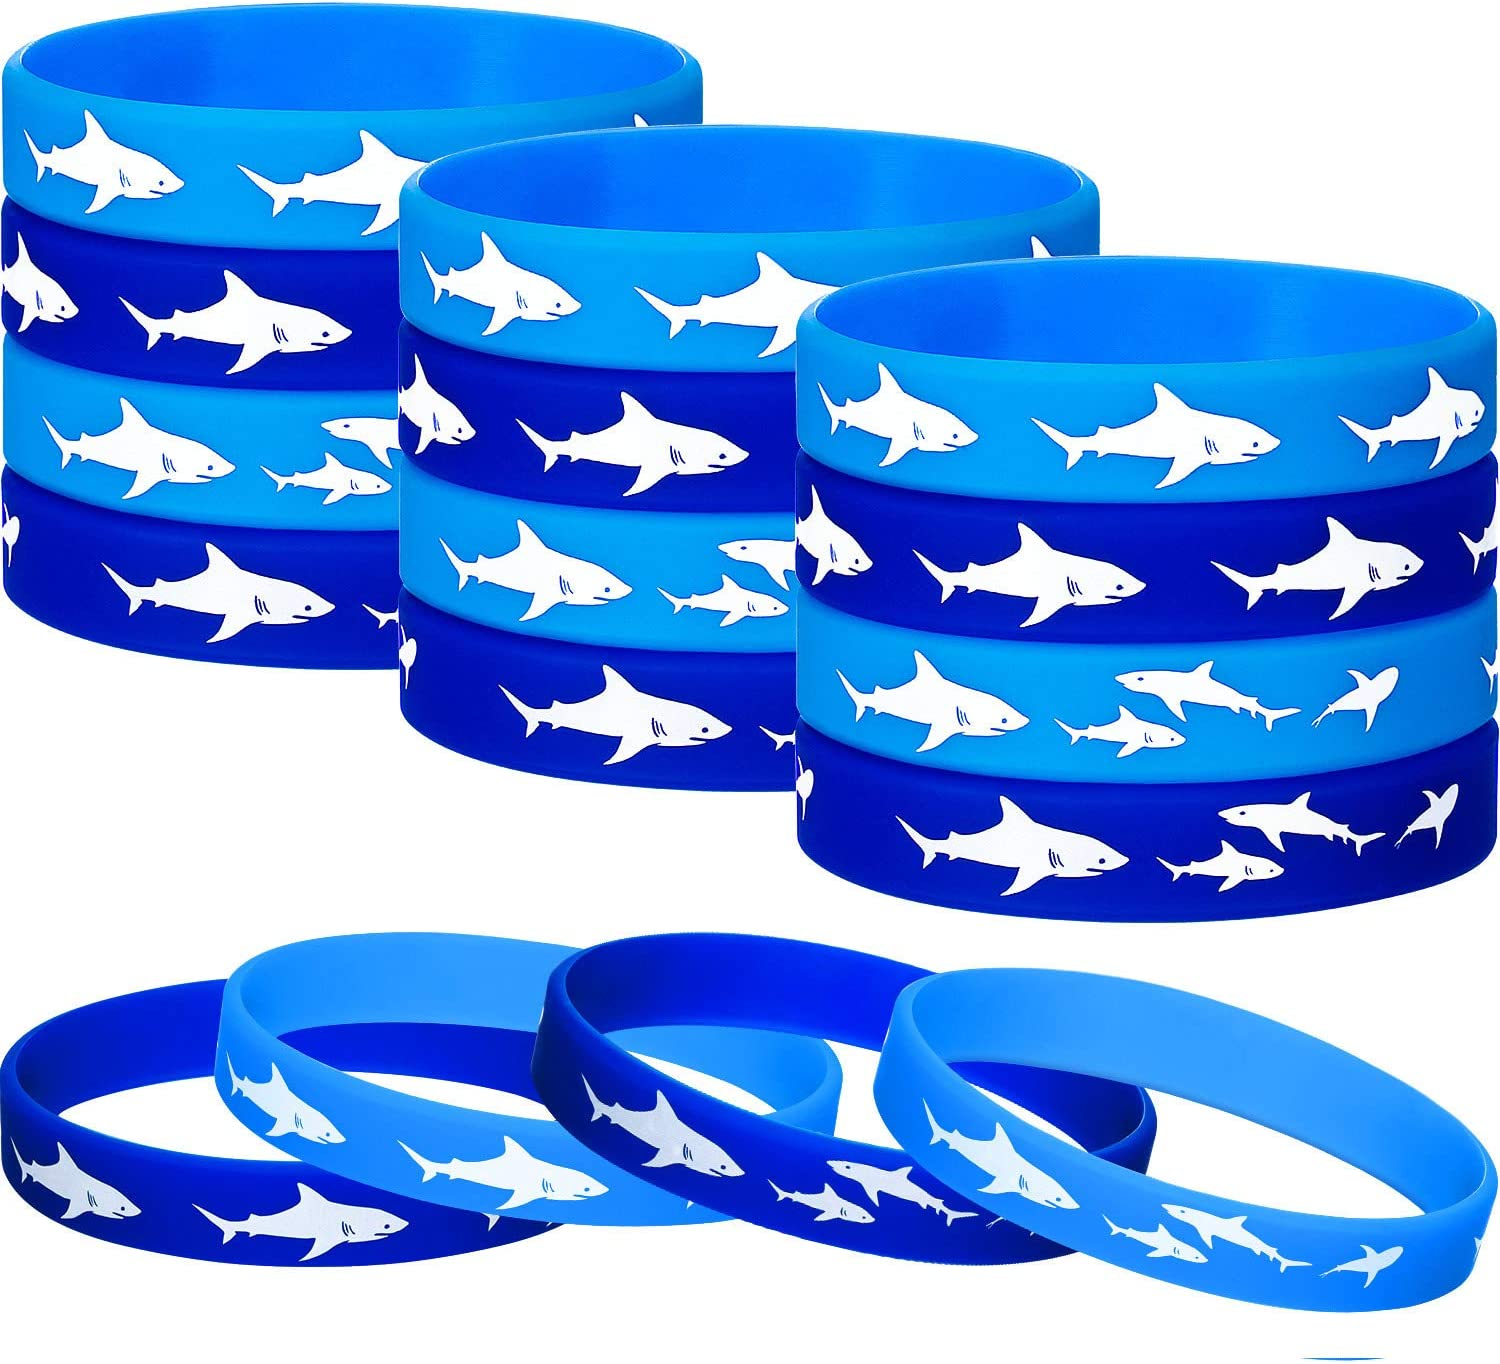 meekoo 24 Pieces Shark Party Favors Rubber Wristbands Bracelet, Under The Sea, Shark Birthday Party Favors Supplies Gift Decorations (24 Pieces)